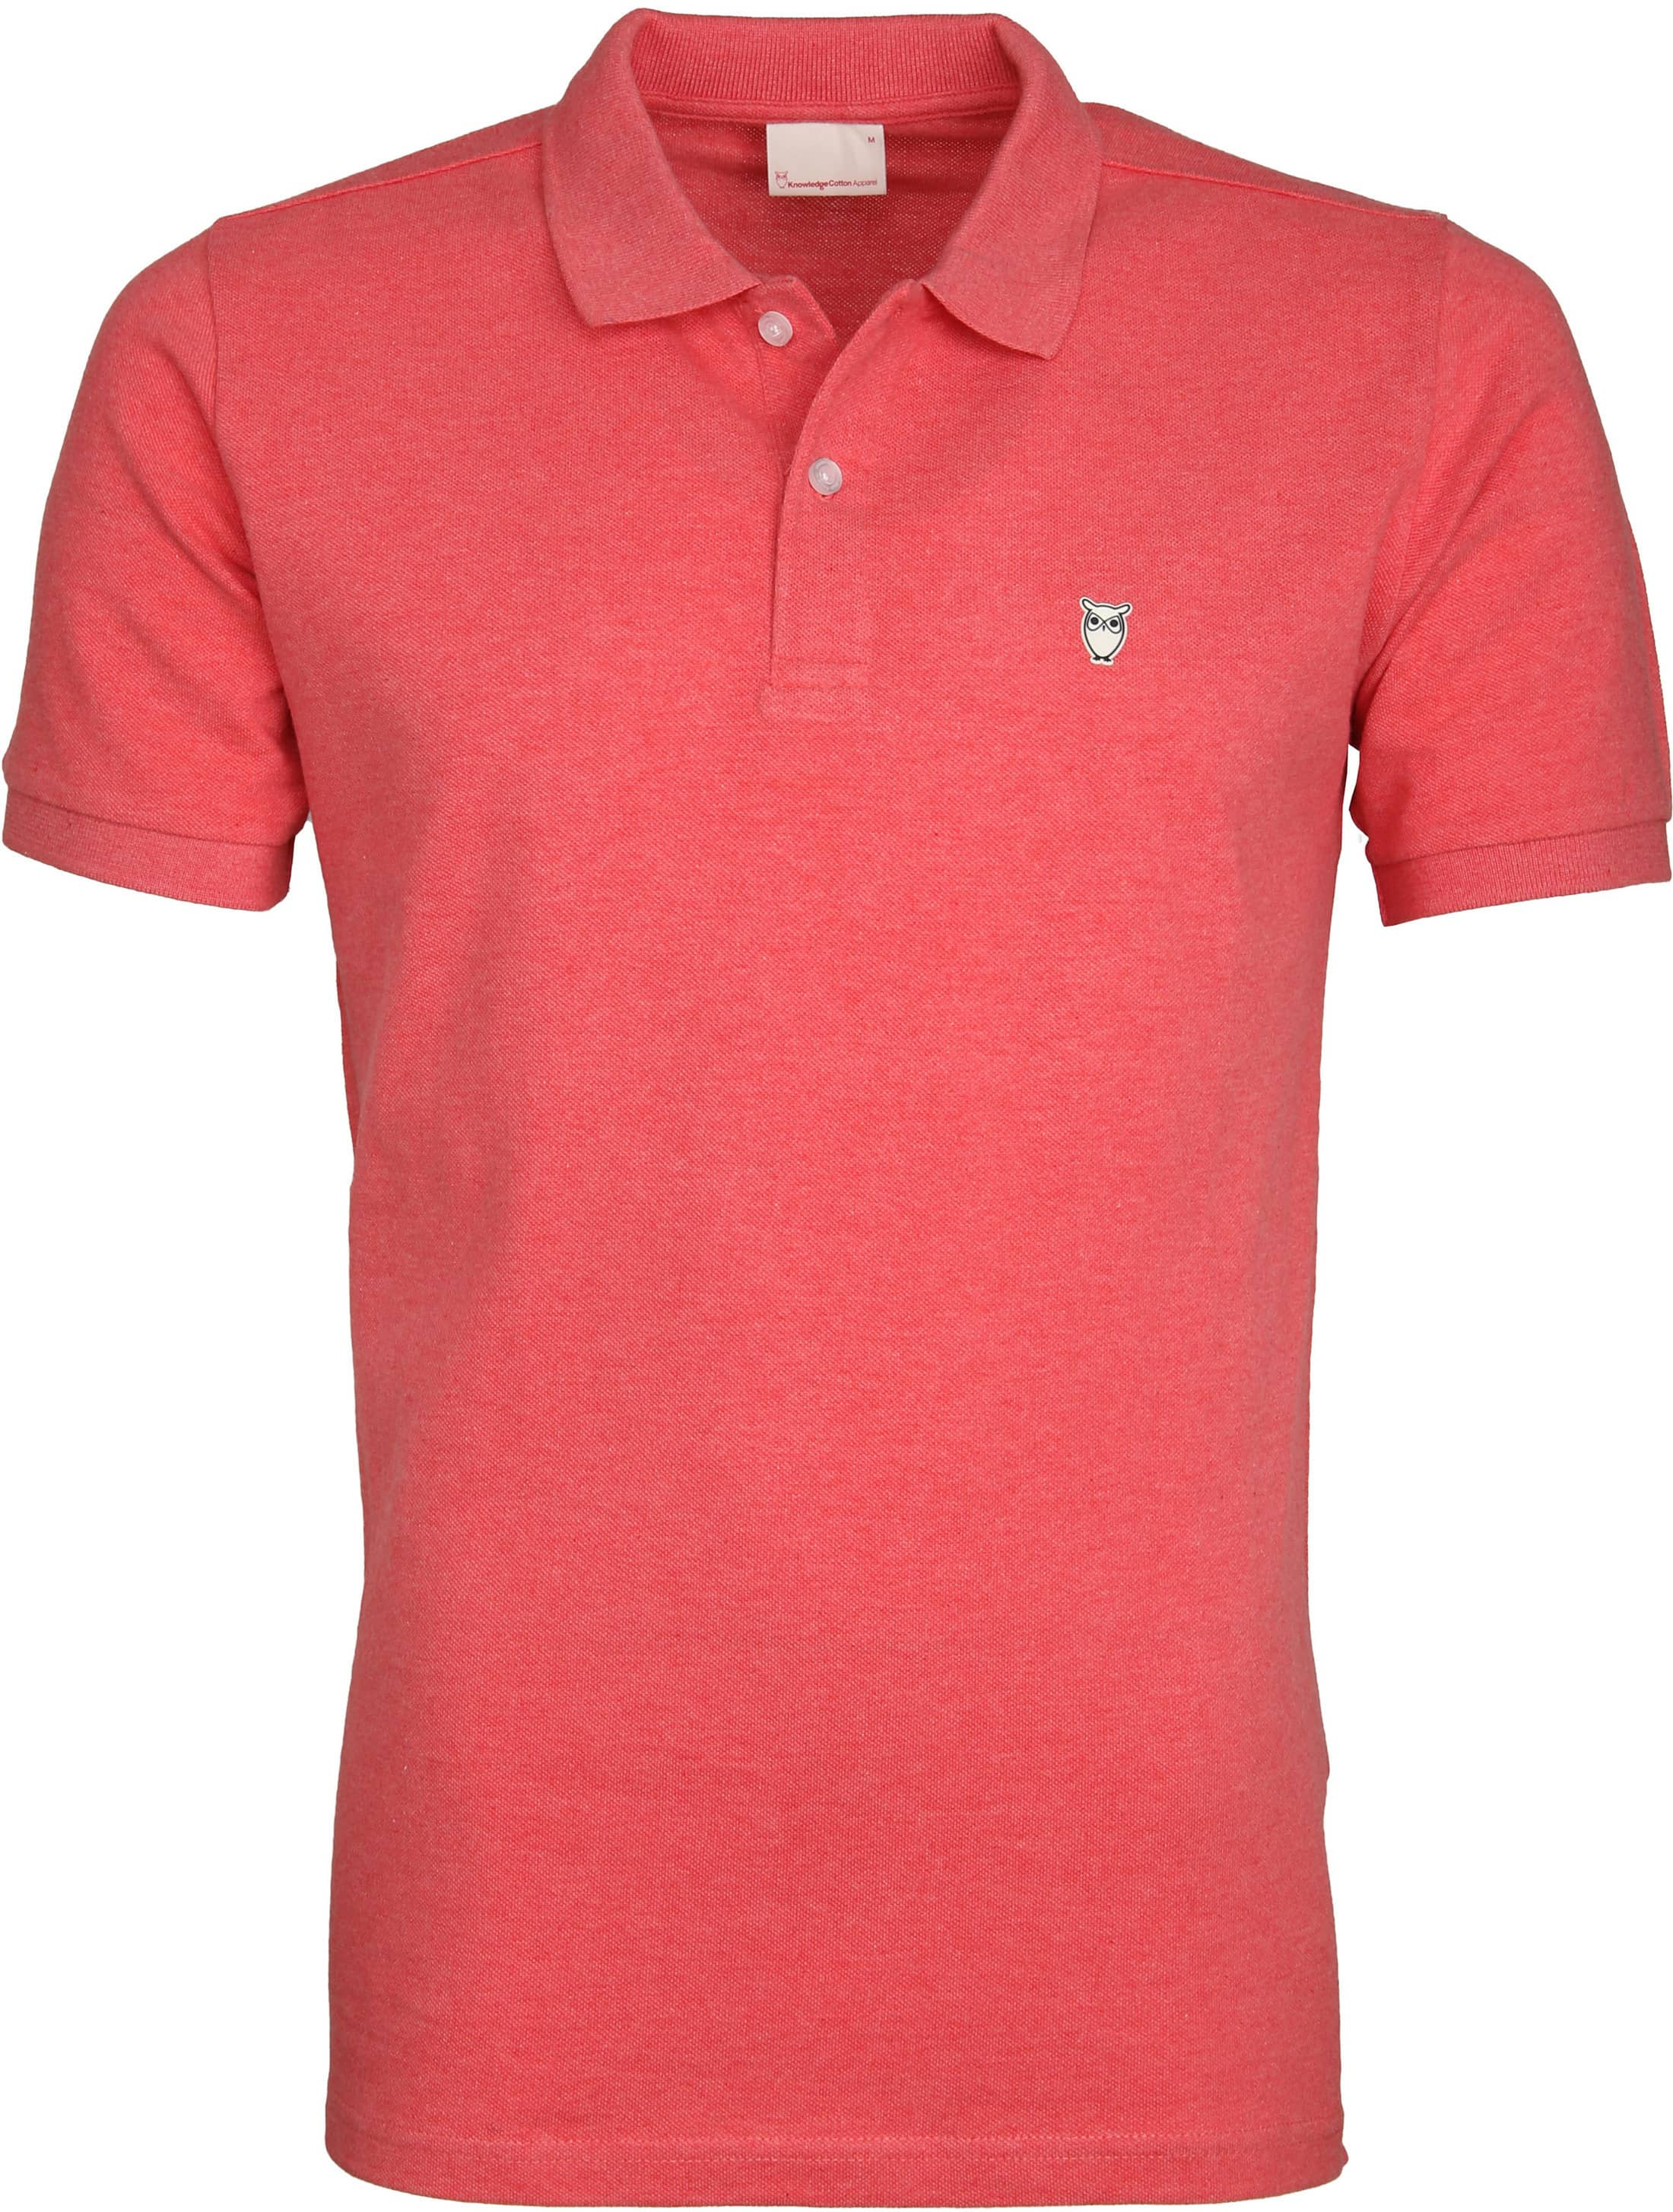 Knowledge Cotton Apparel Polo Coral foto 0